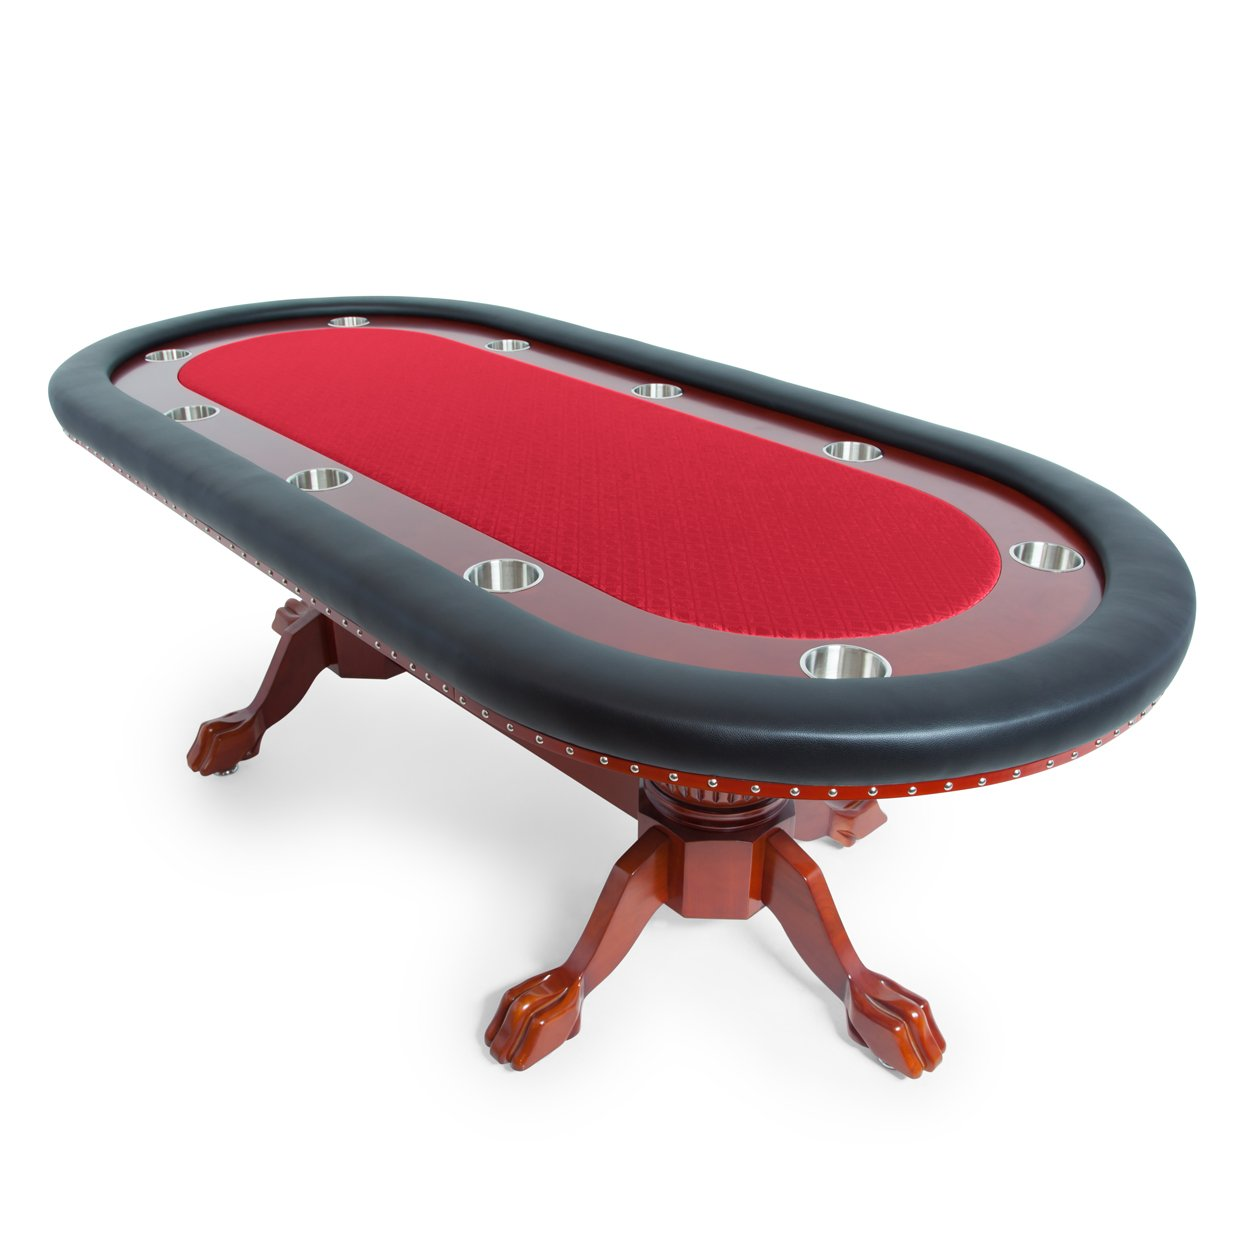 BBO Poker Rockwell Poker Table for 10 Players, 94 x 44-Inch Oval